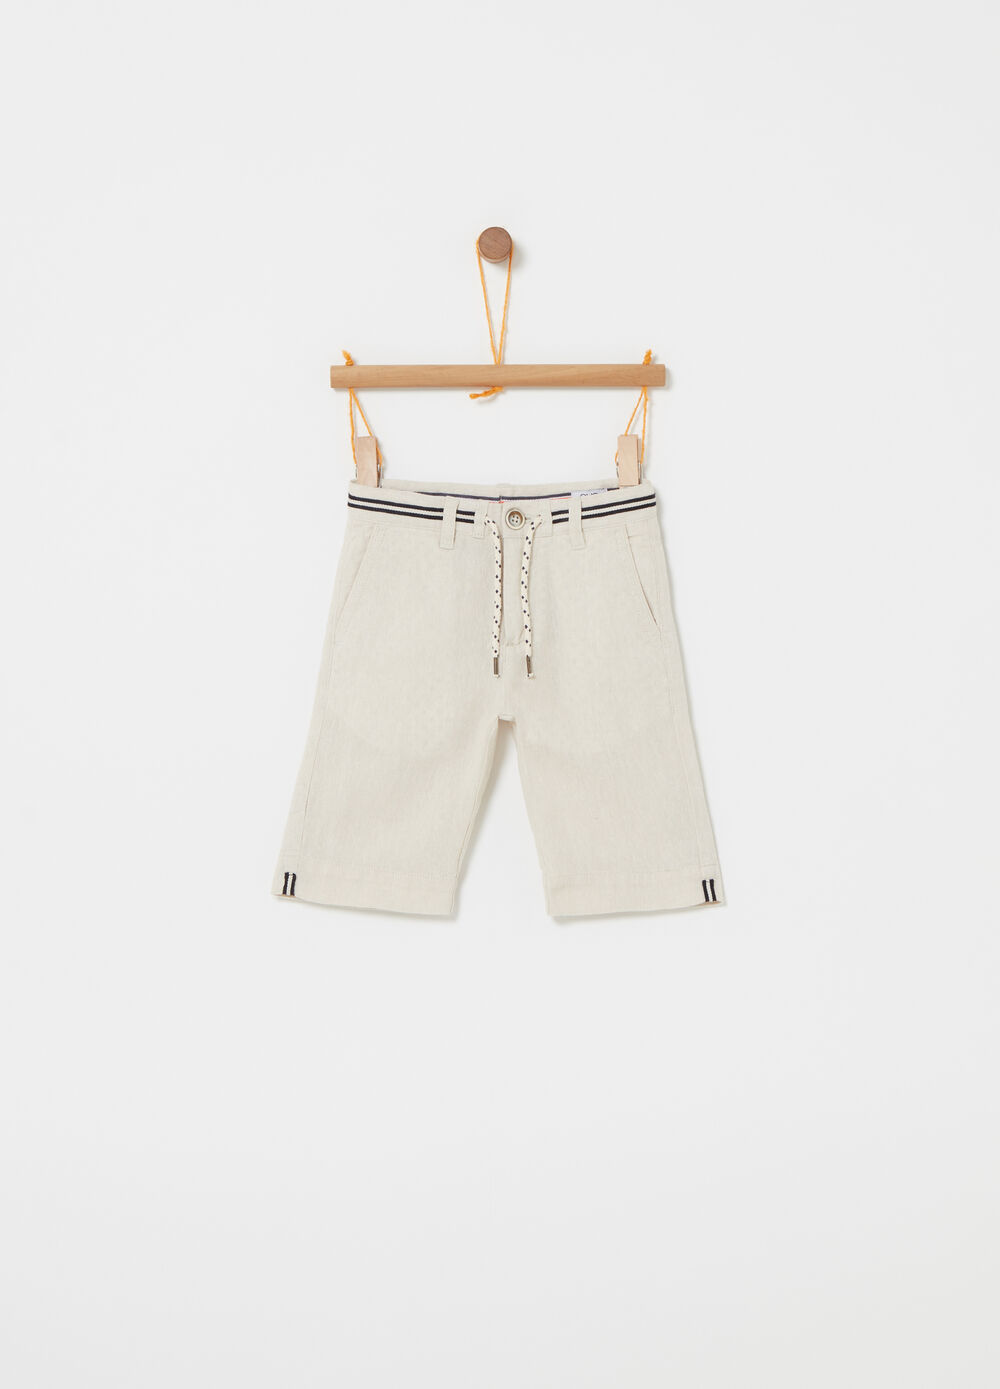 Shorts with drawstring and striped details